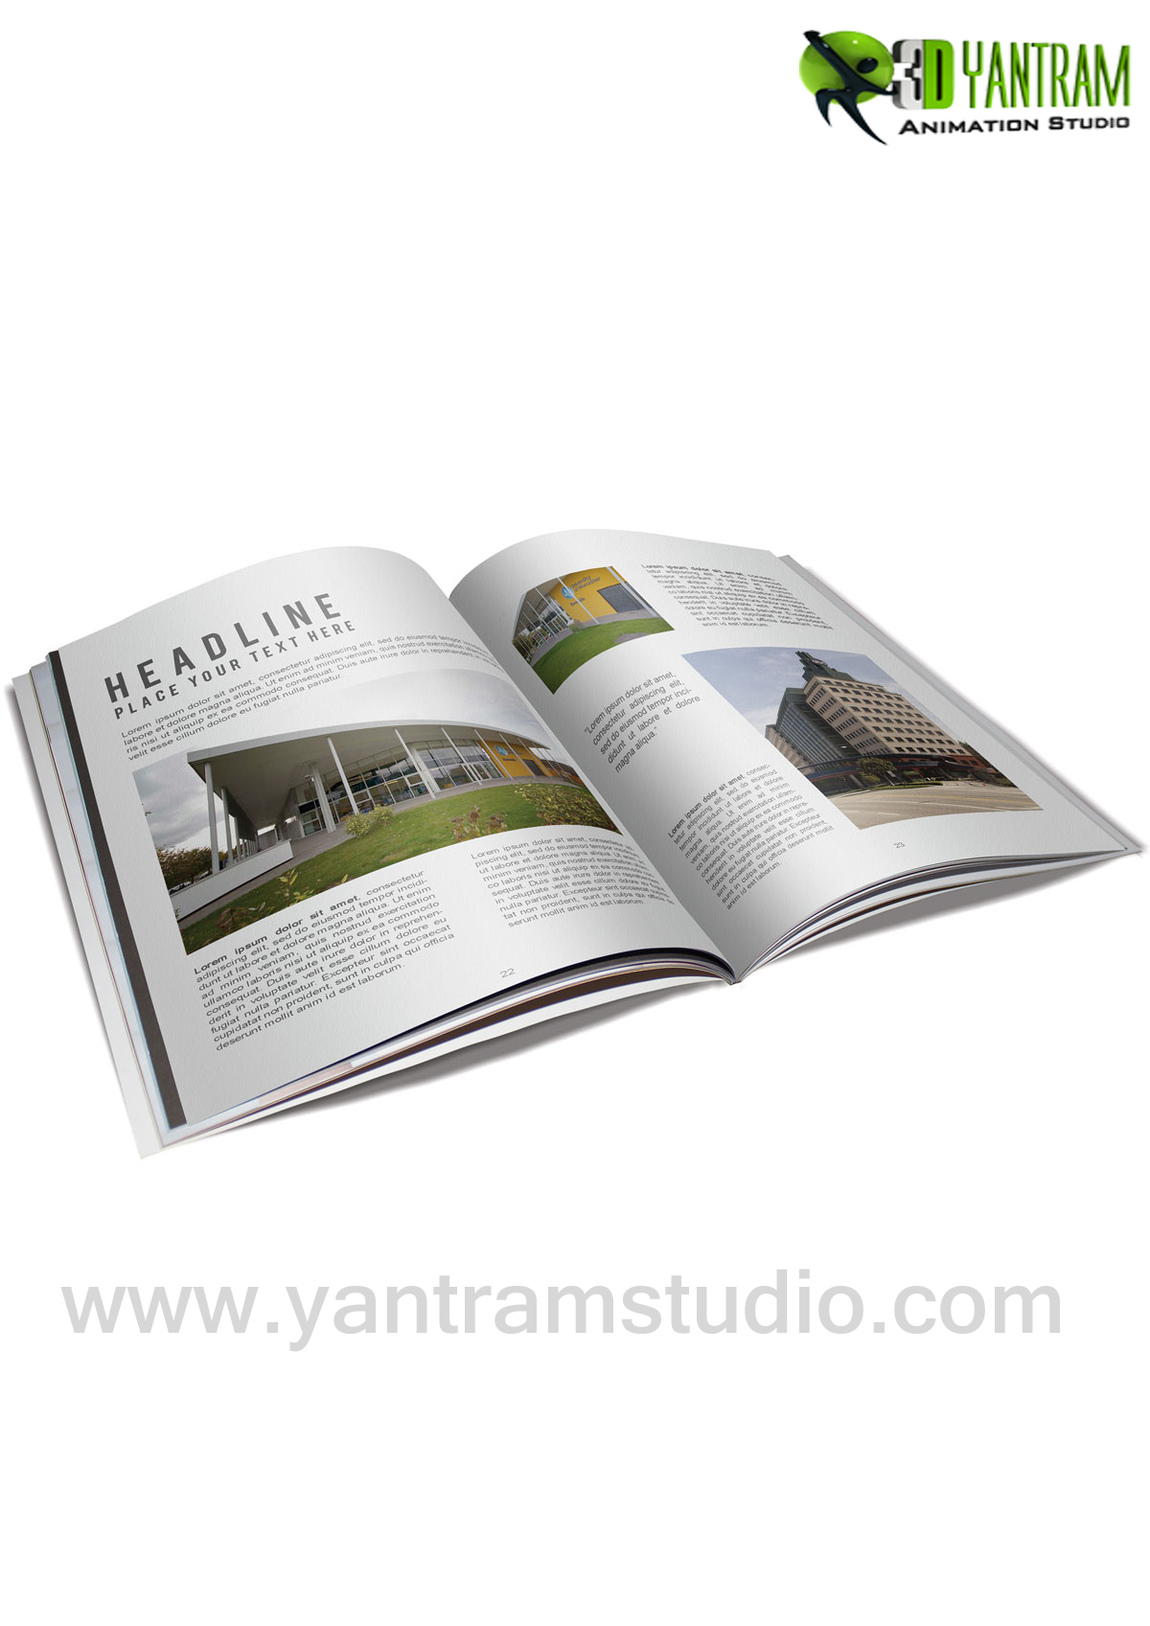 Yantram Studio - Real Estate Booklet Services By Yantram website development - Perth, Australia